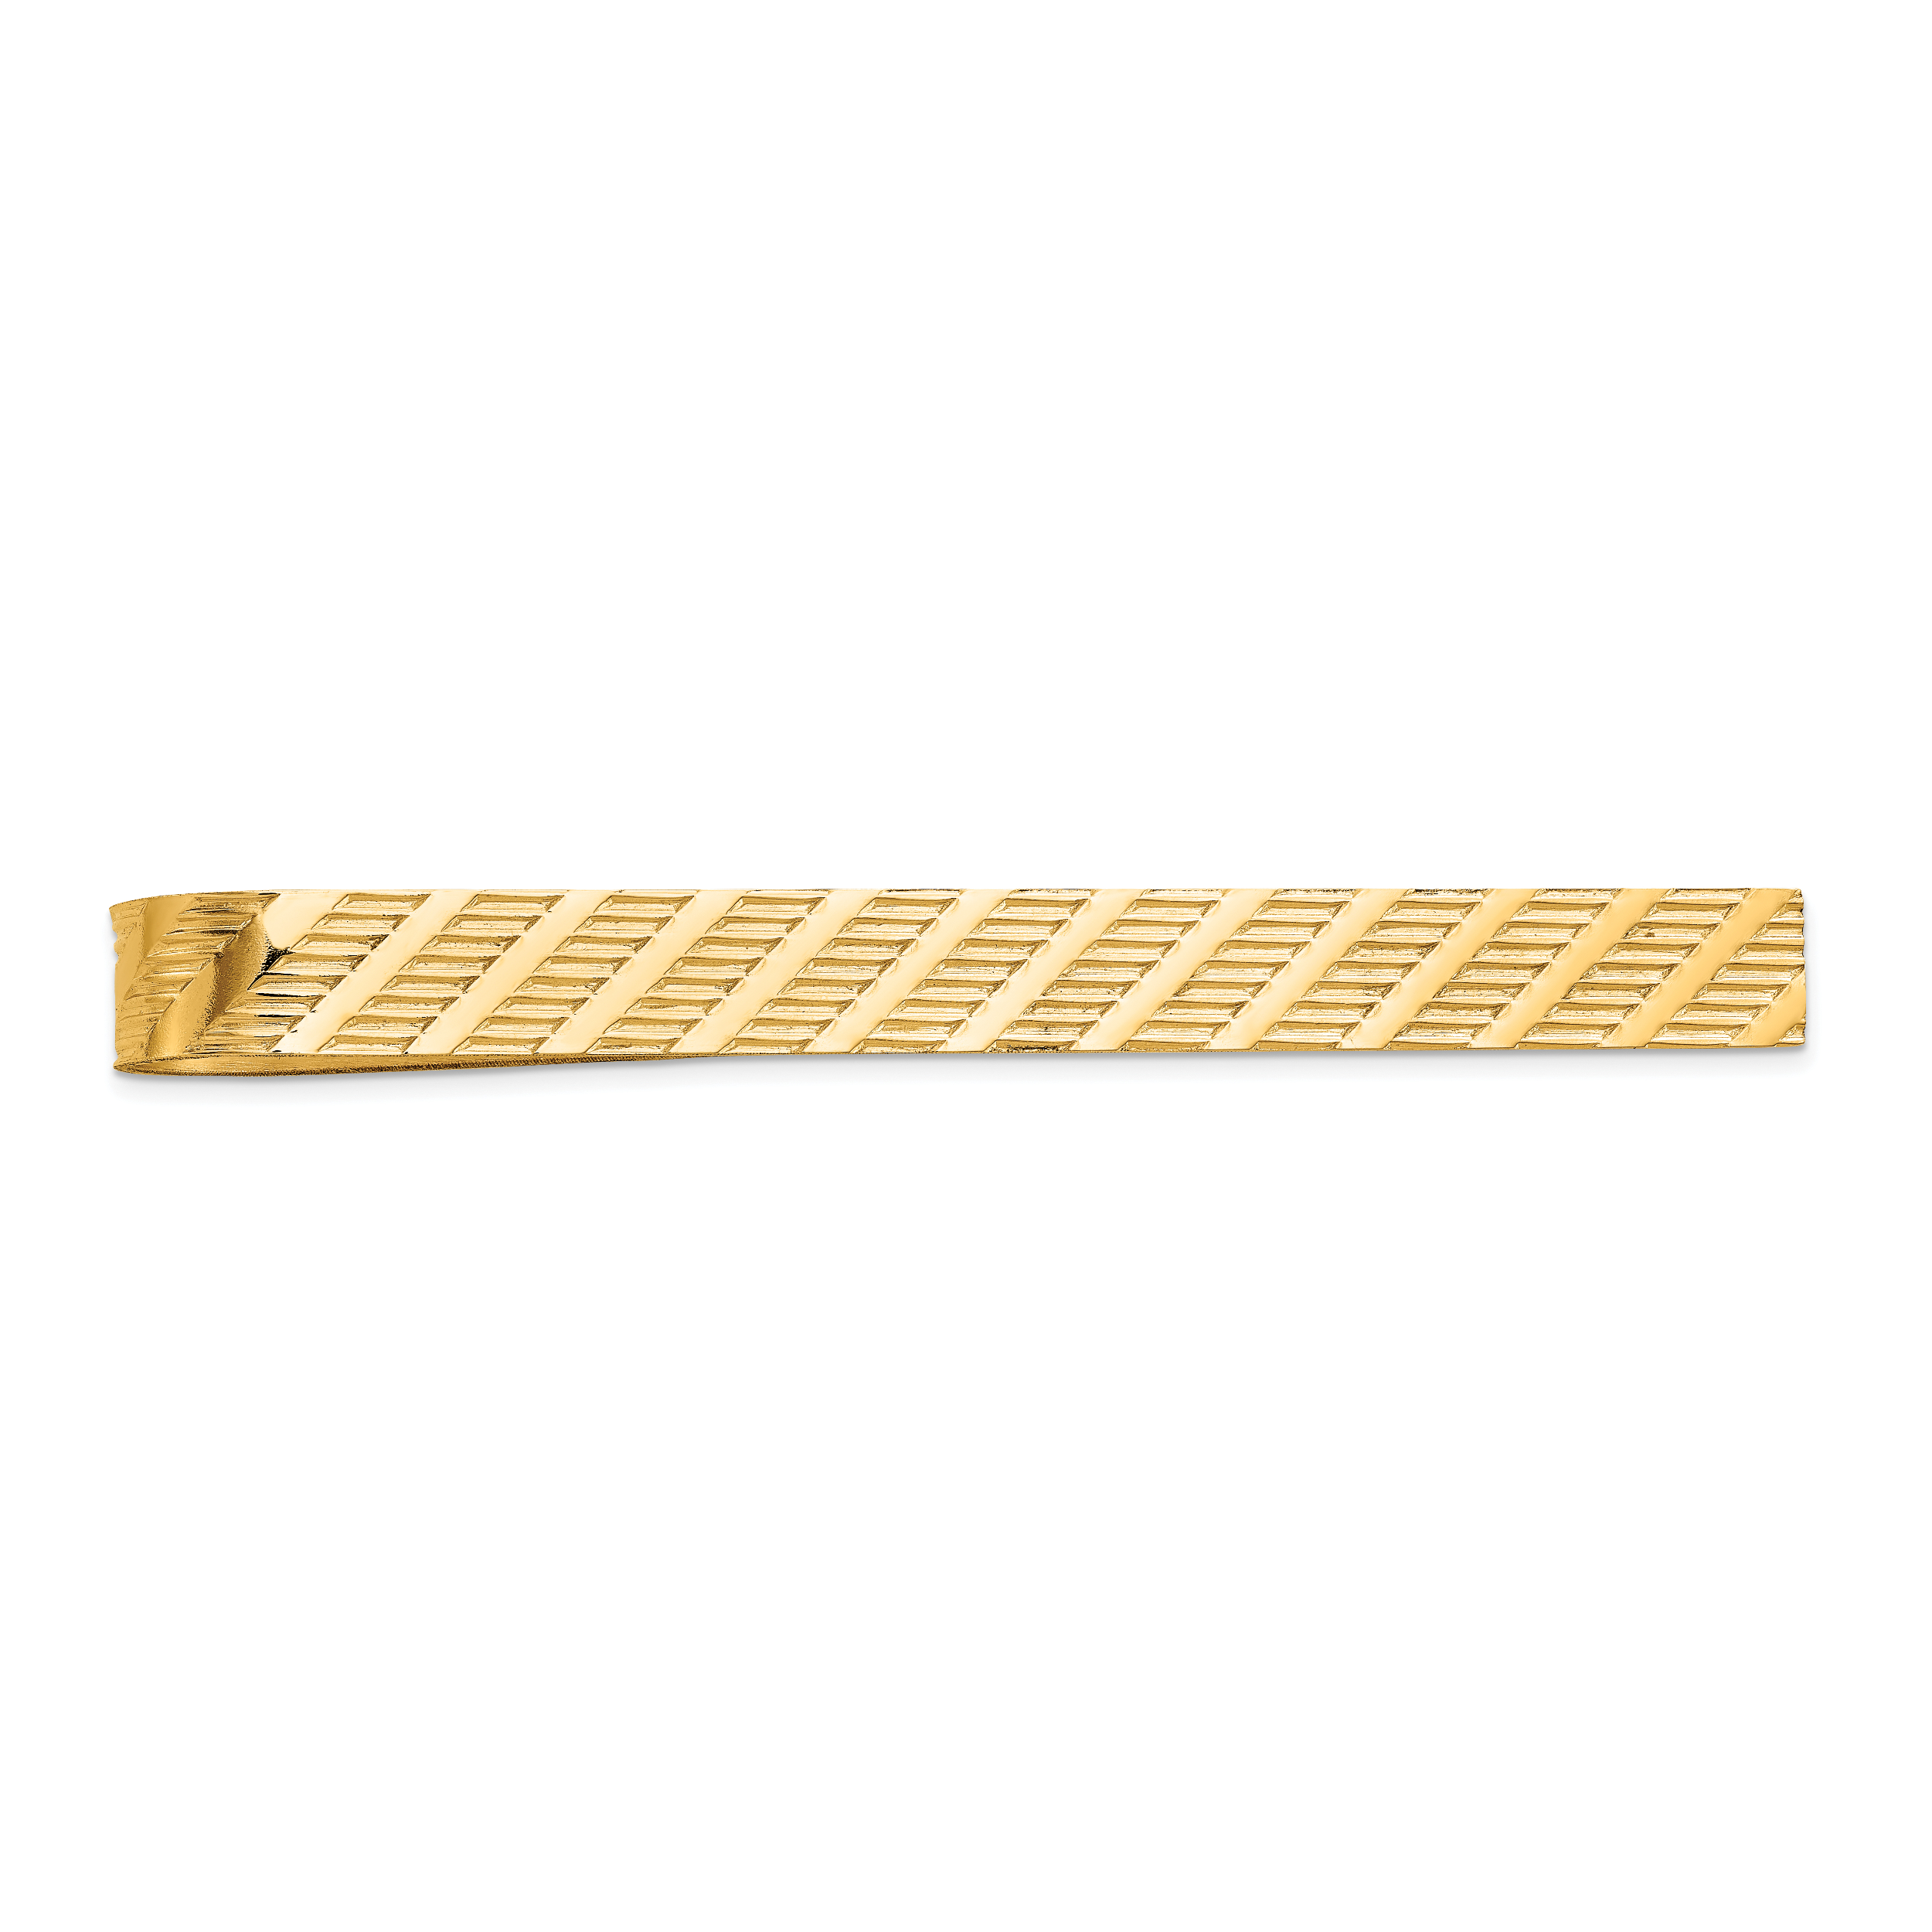 14k Yellow Gold Tie Bar Man Tac Fine Jewelry Gift For Dad Mens For Him - image 6 de 6